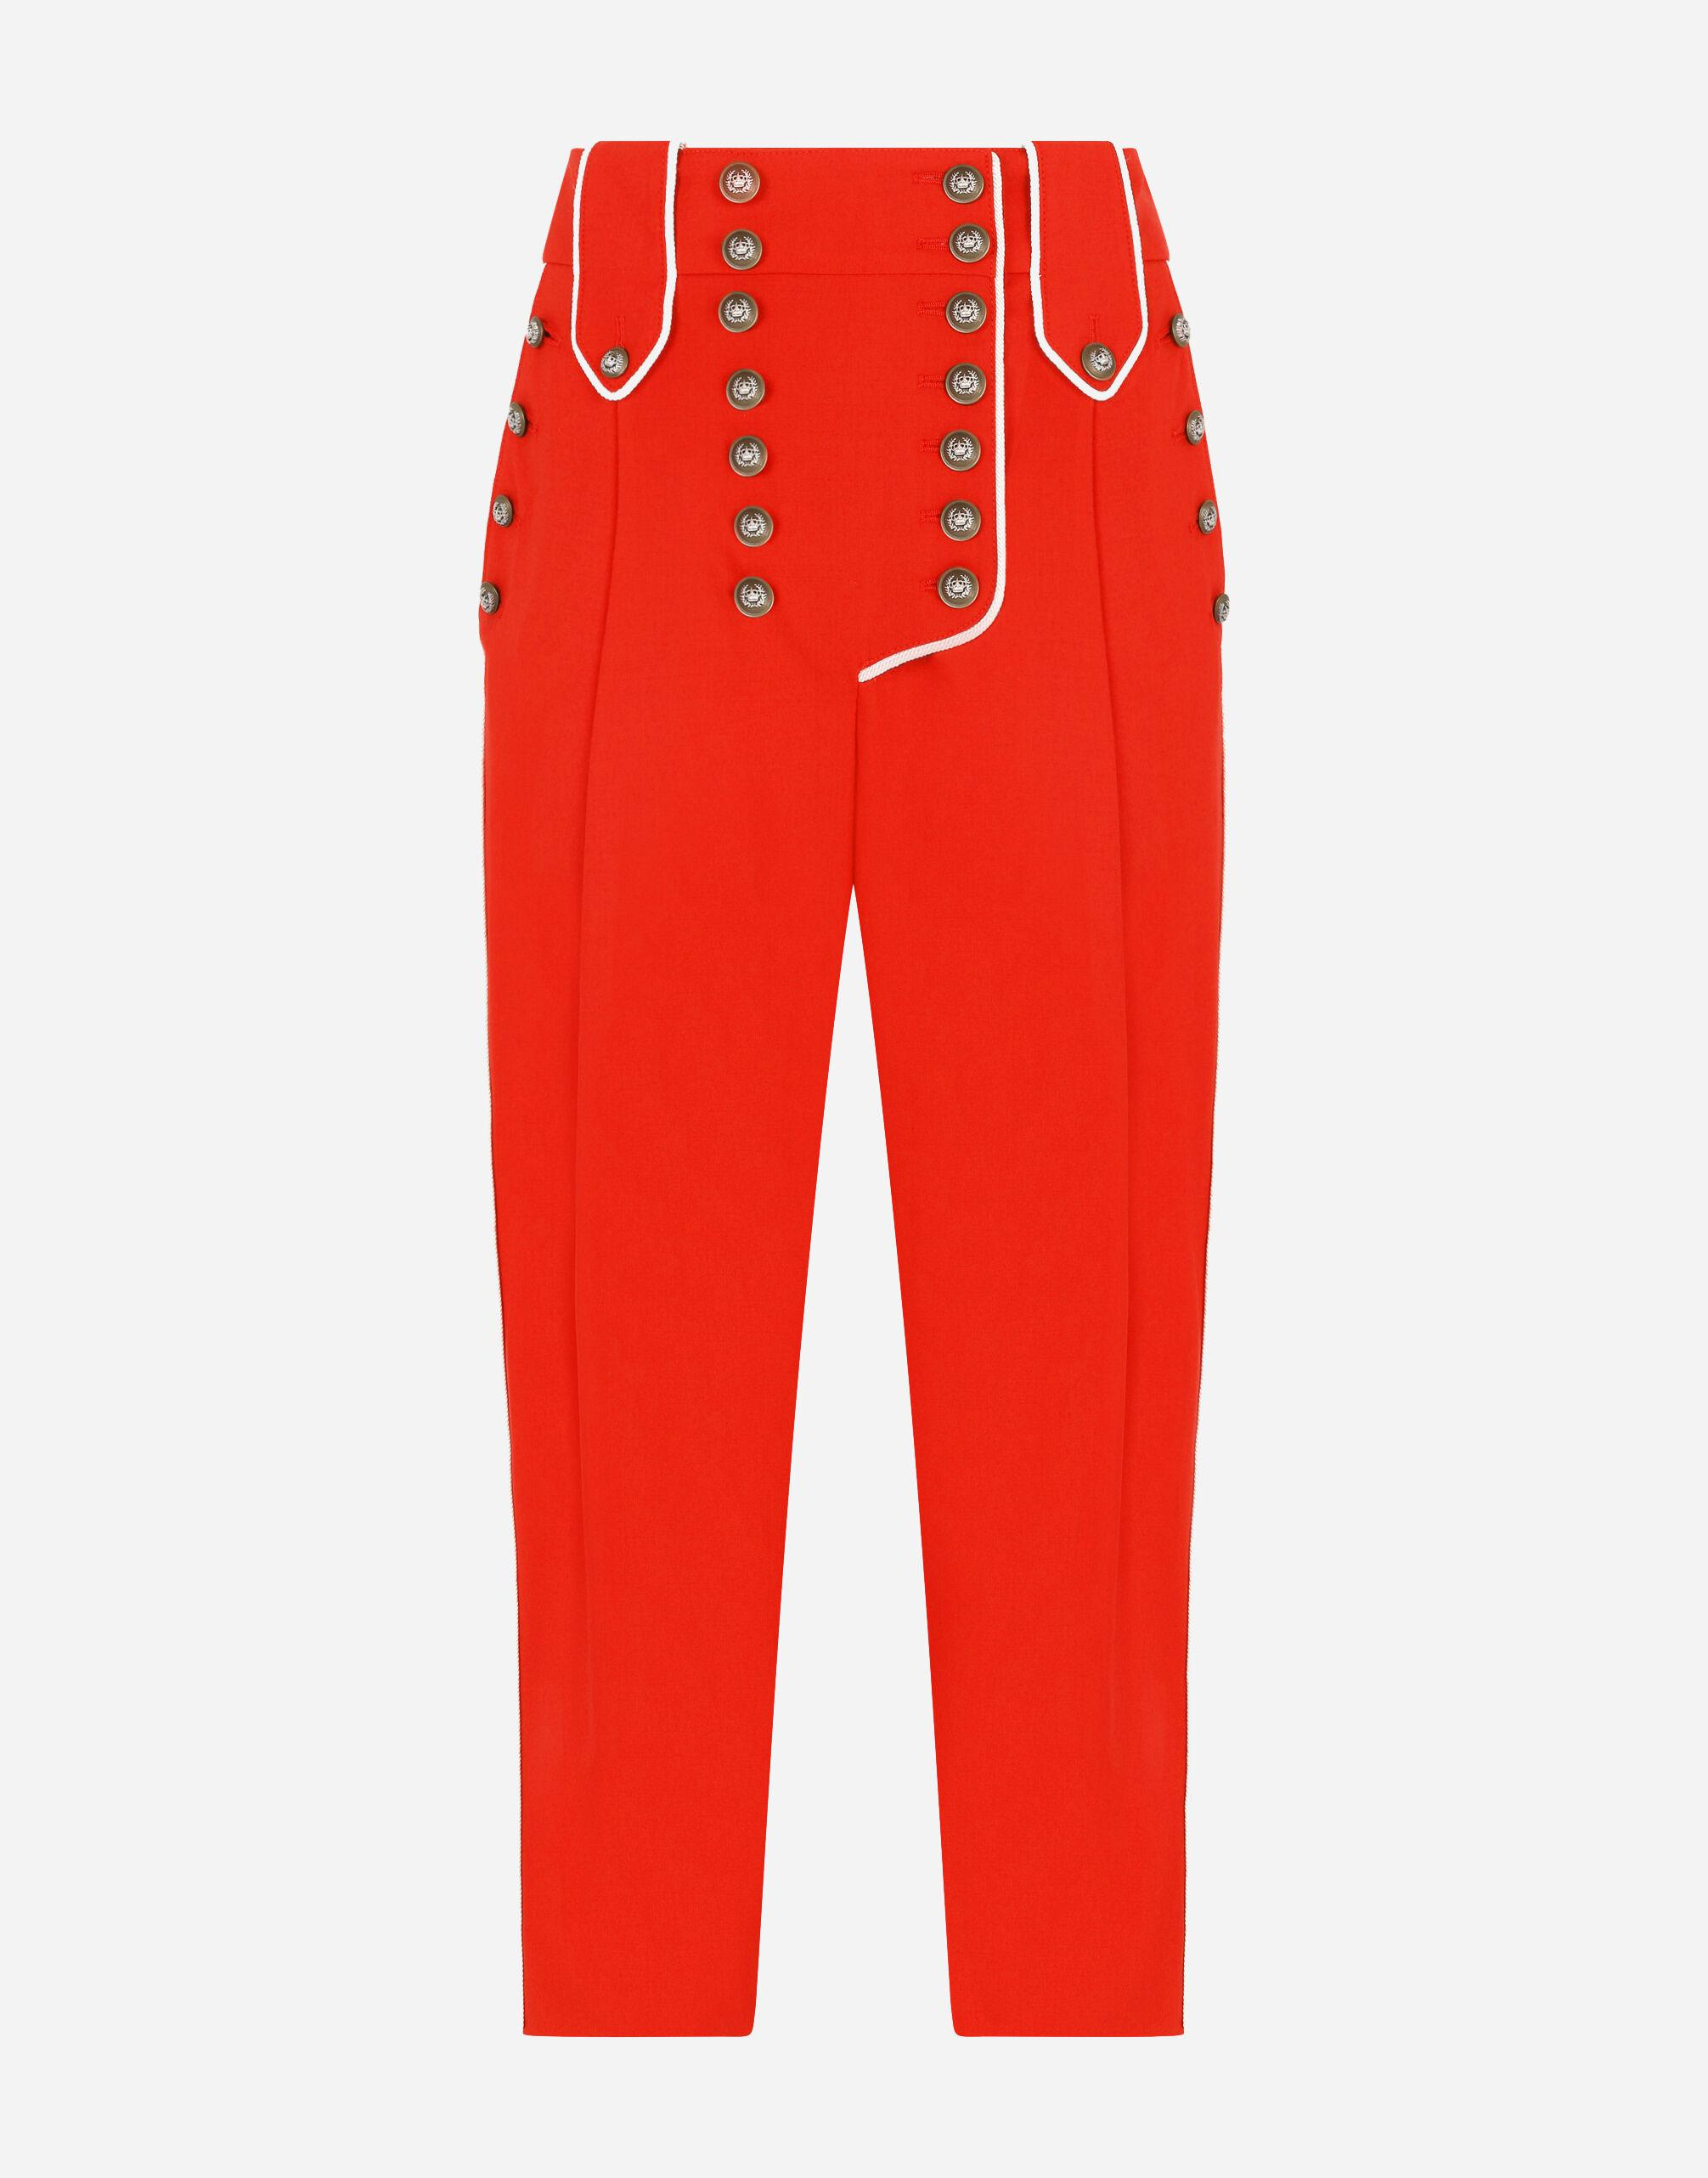 High-waisted woolen pants with heraldic buttons 3